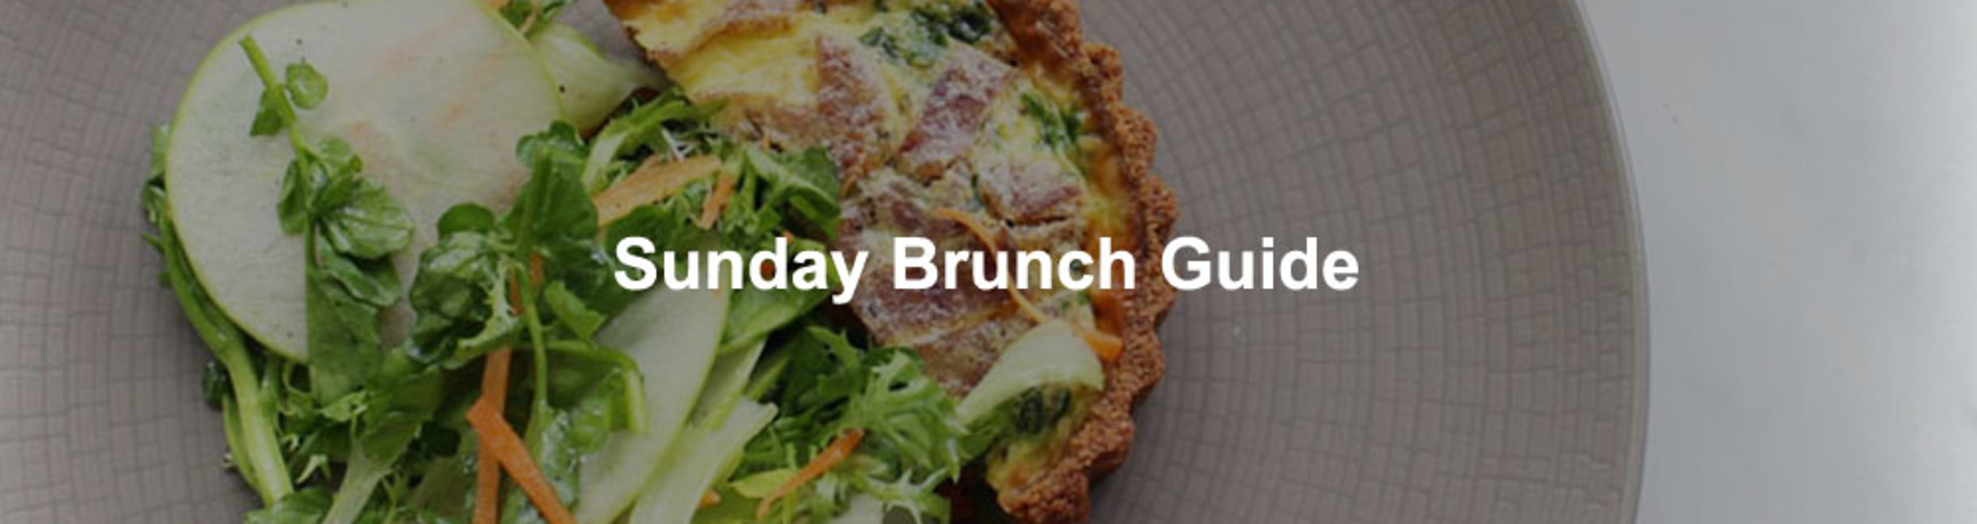 Sunday Brunch Guide Voucher Makan Hotel Ritz Carlton Resto Asia Begin Your With A Hearty If Youre Not Sure Where To Dine Heres List Of Restaurants We Recommend